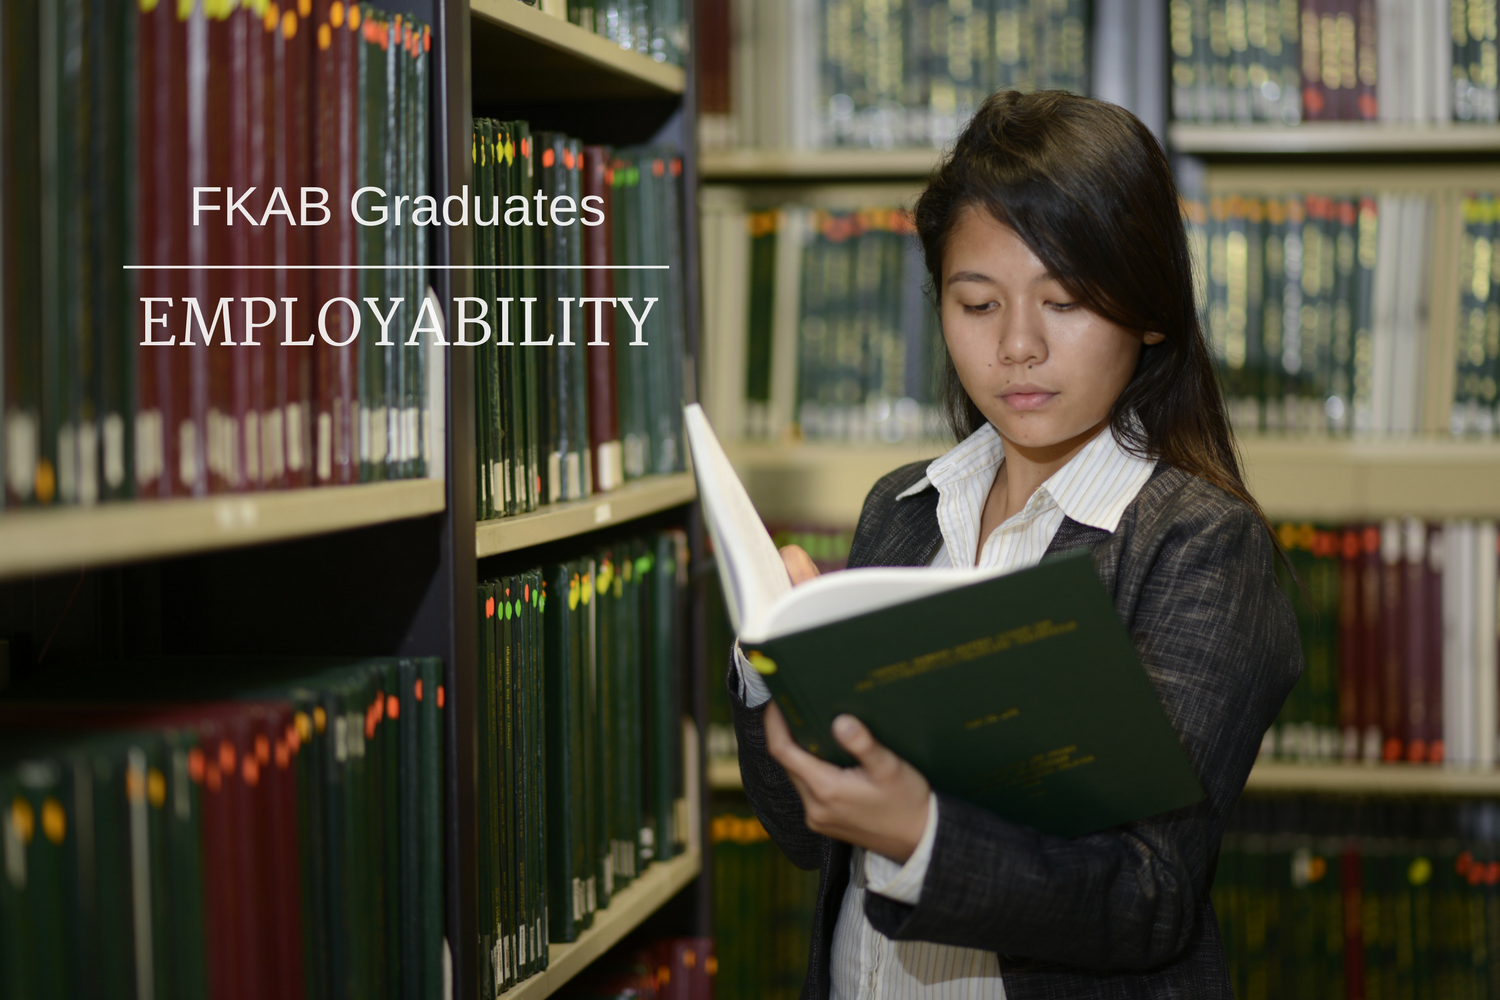 employability of graduates Graduate employability means that higher education alumni have developed the capacity to obtain and/or create advice for graduates what is graduate employability.